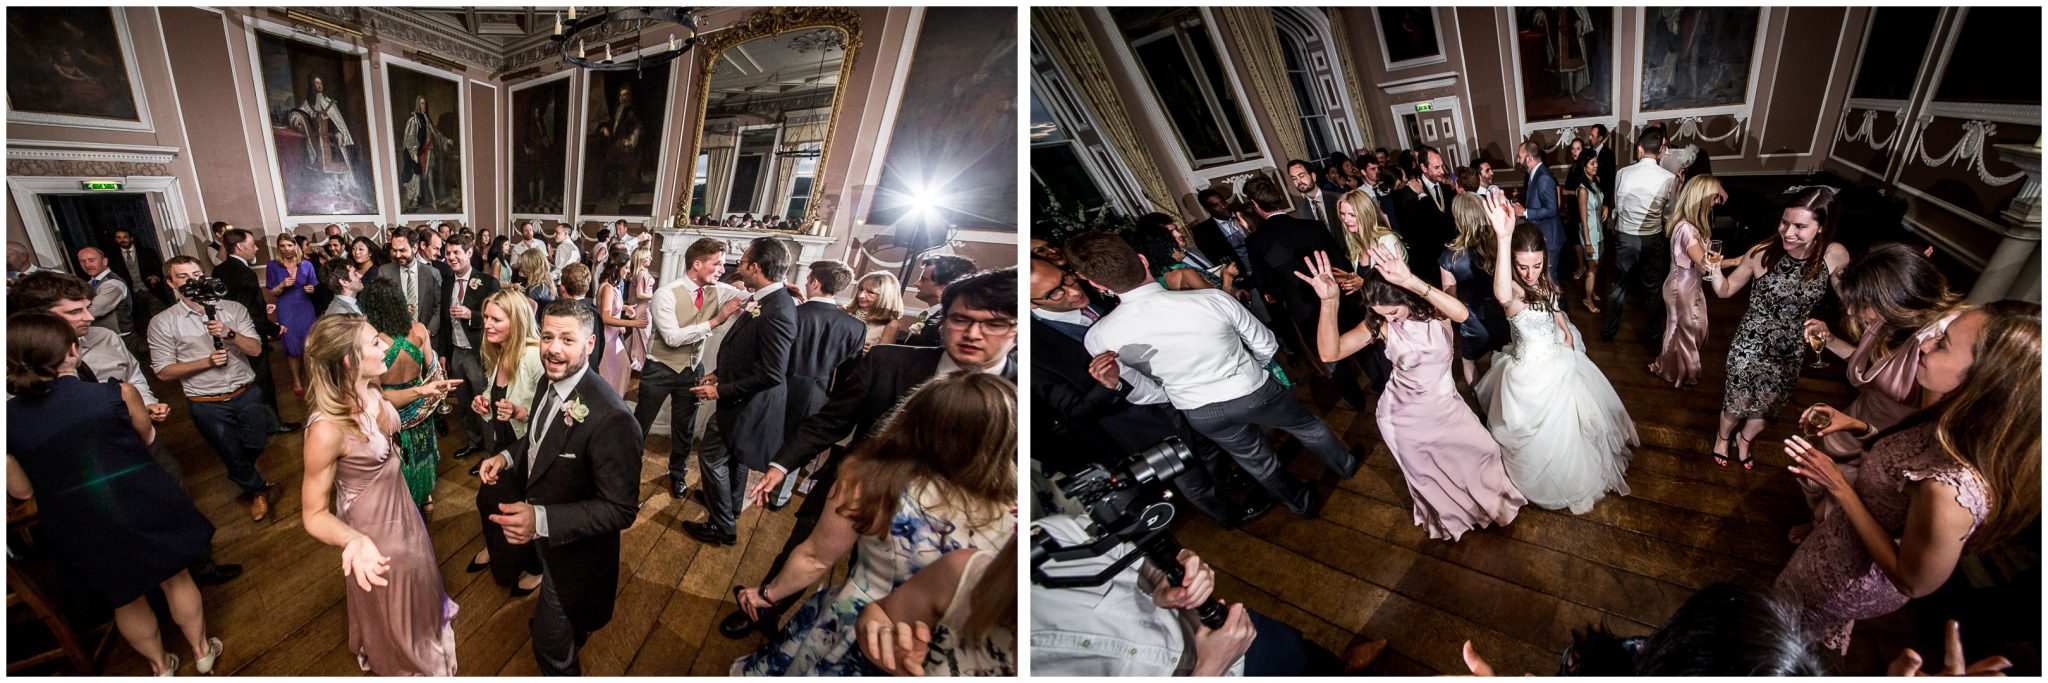 Wedding guests hit the dance floor